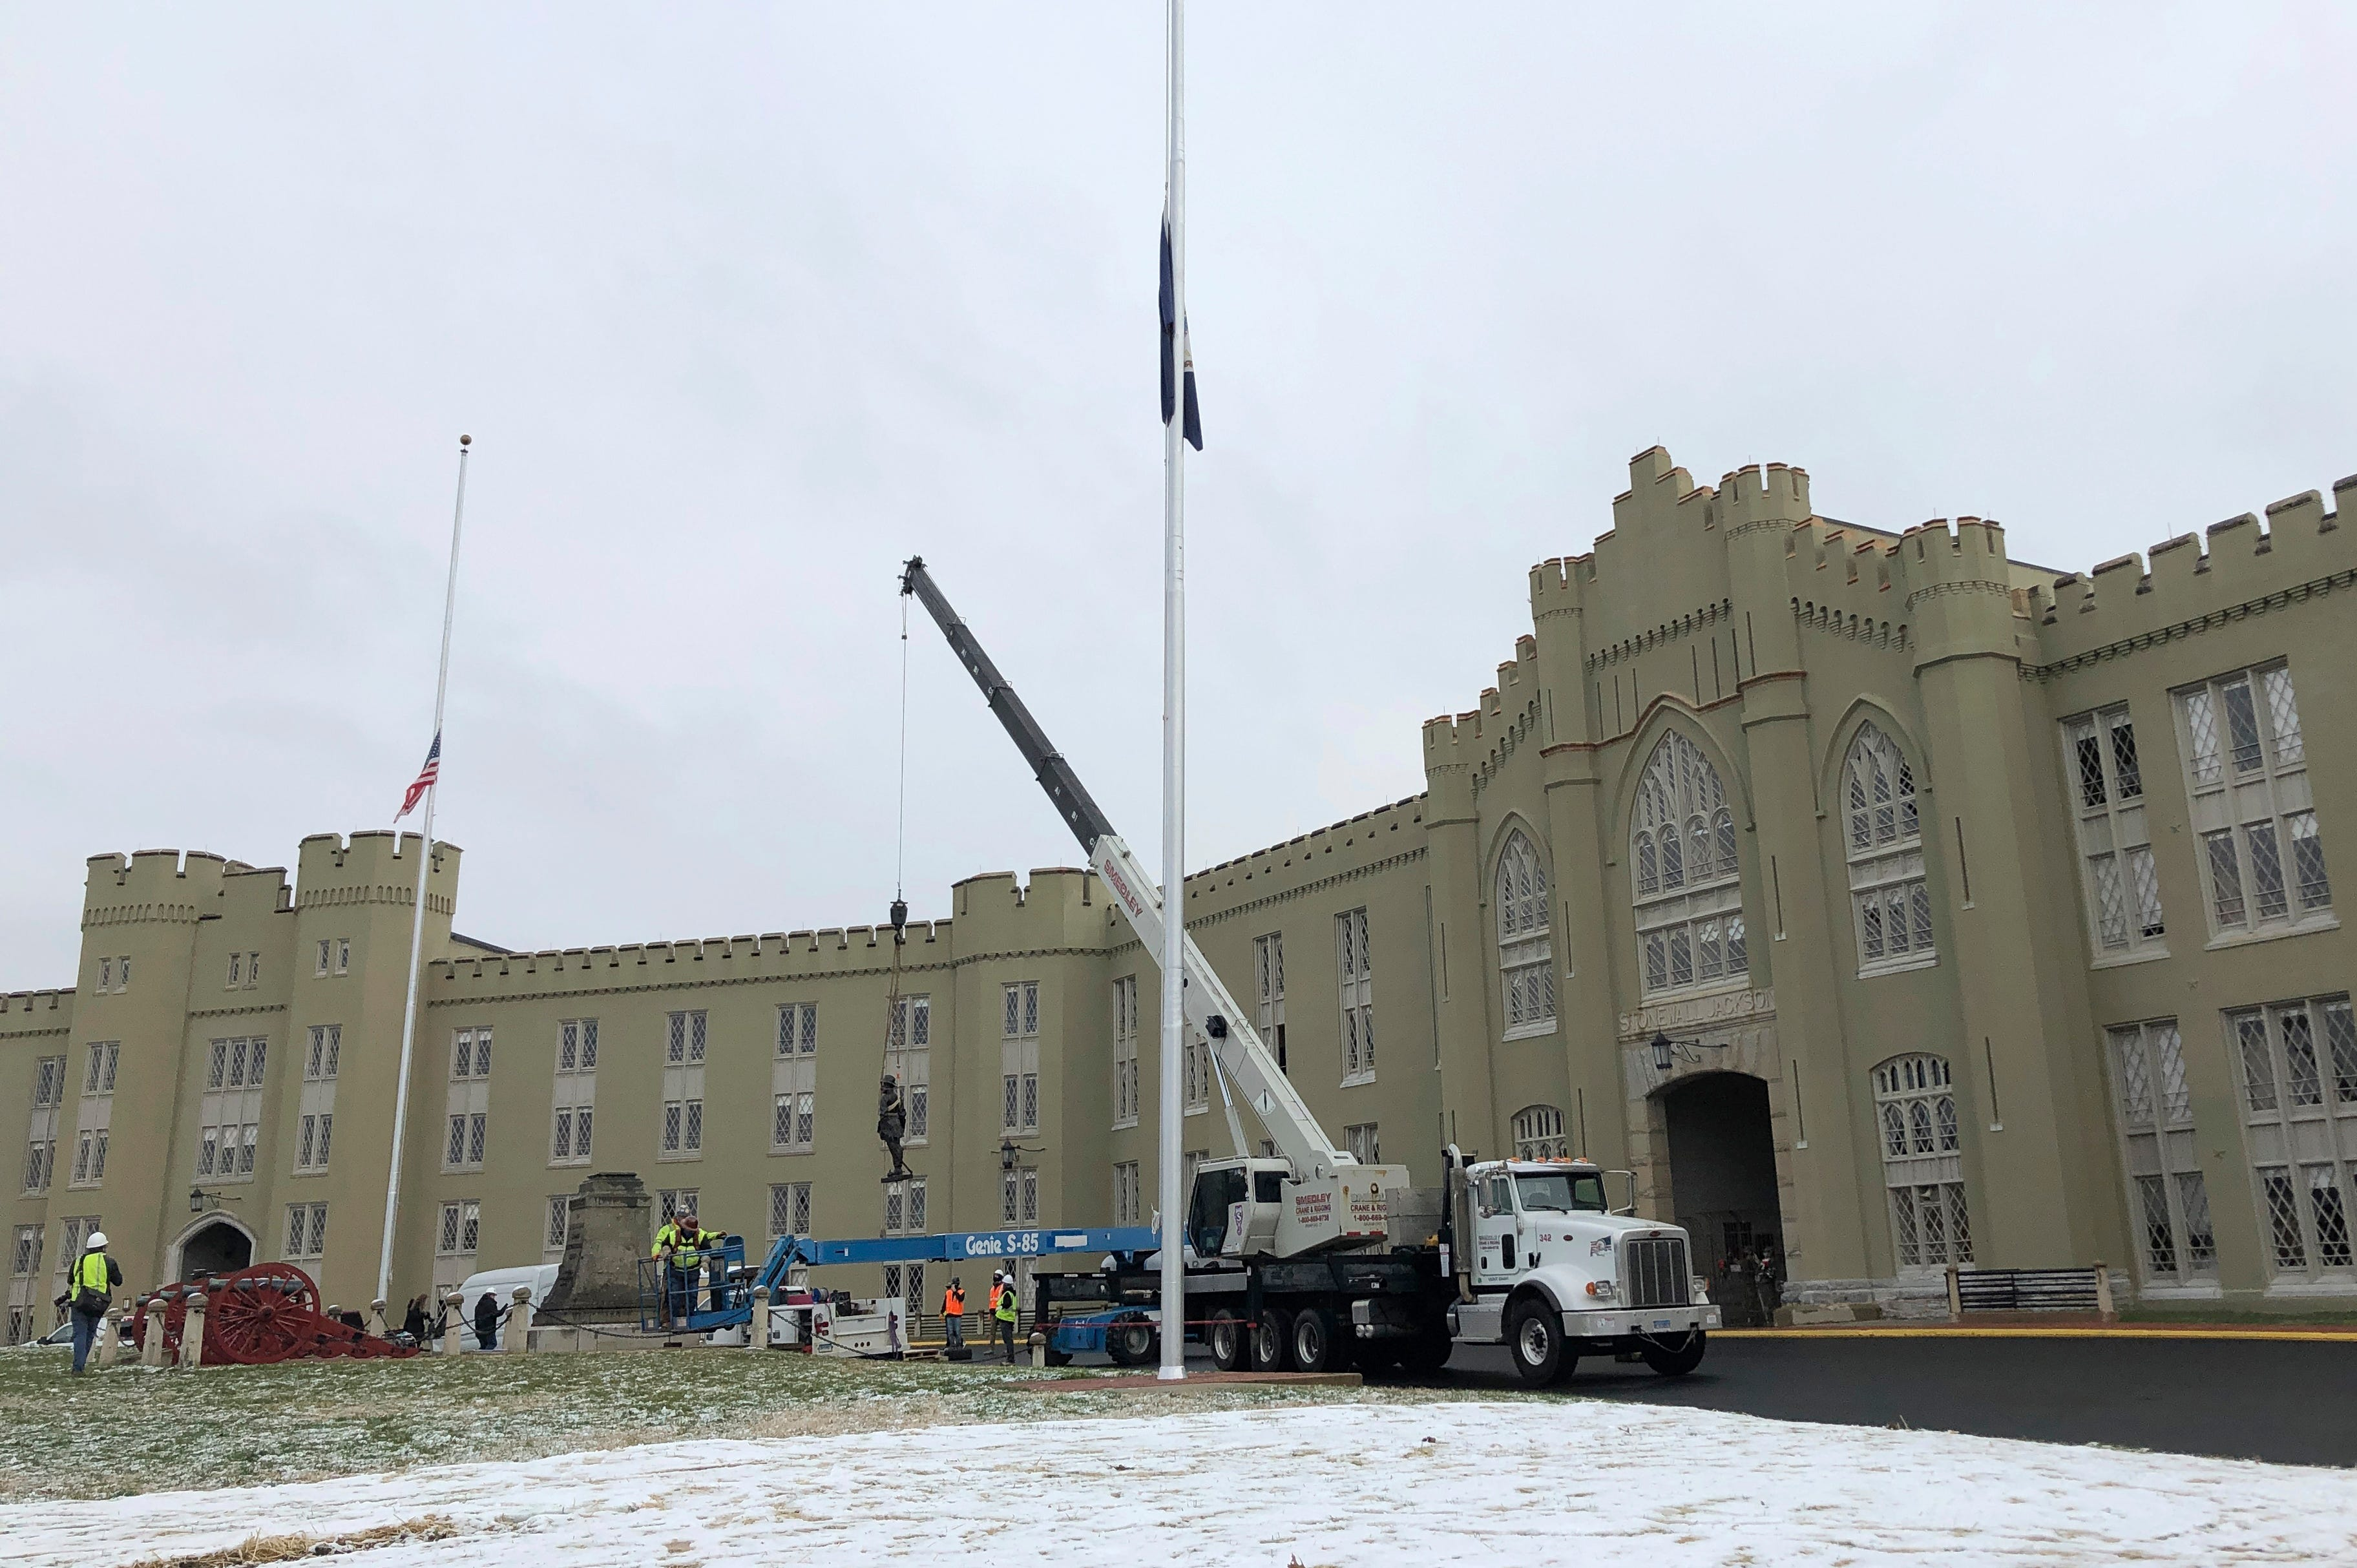 Report tells of sexual assault, racism at military institute 2